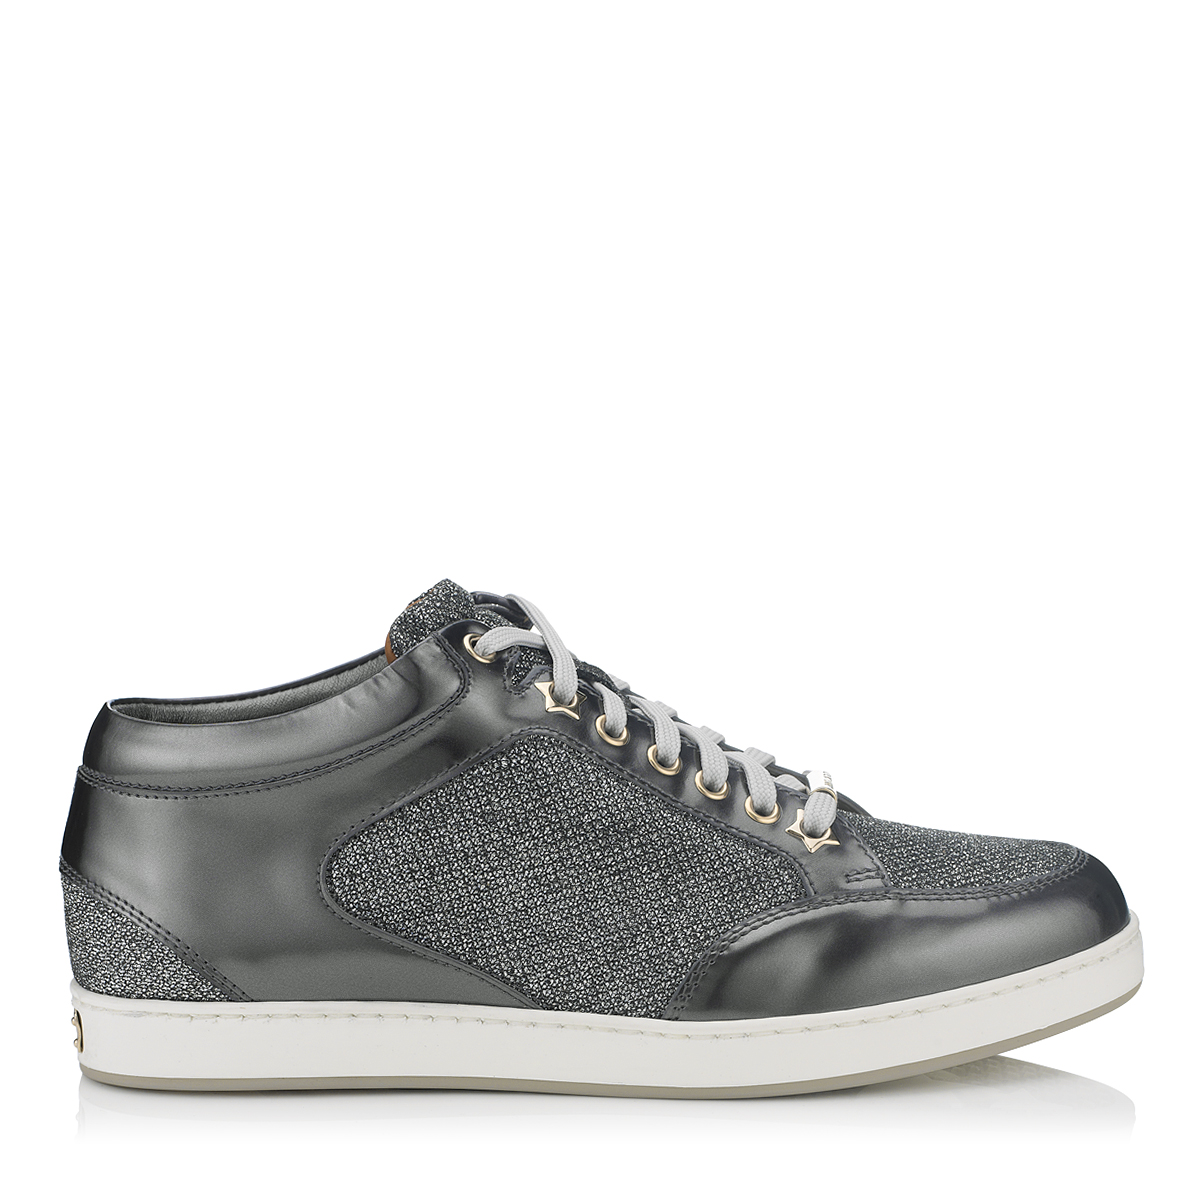 MIAMI Anthracite Glitter and Mirror Leather Sneakers